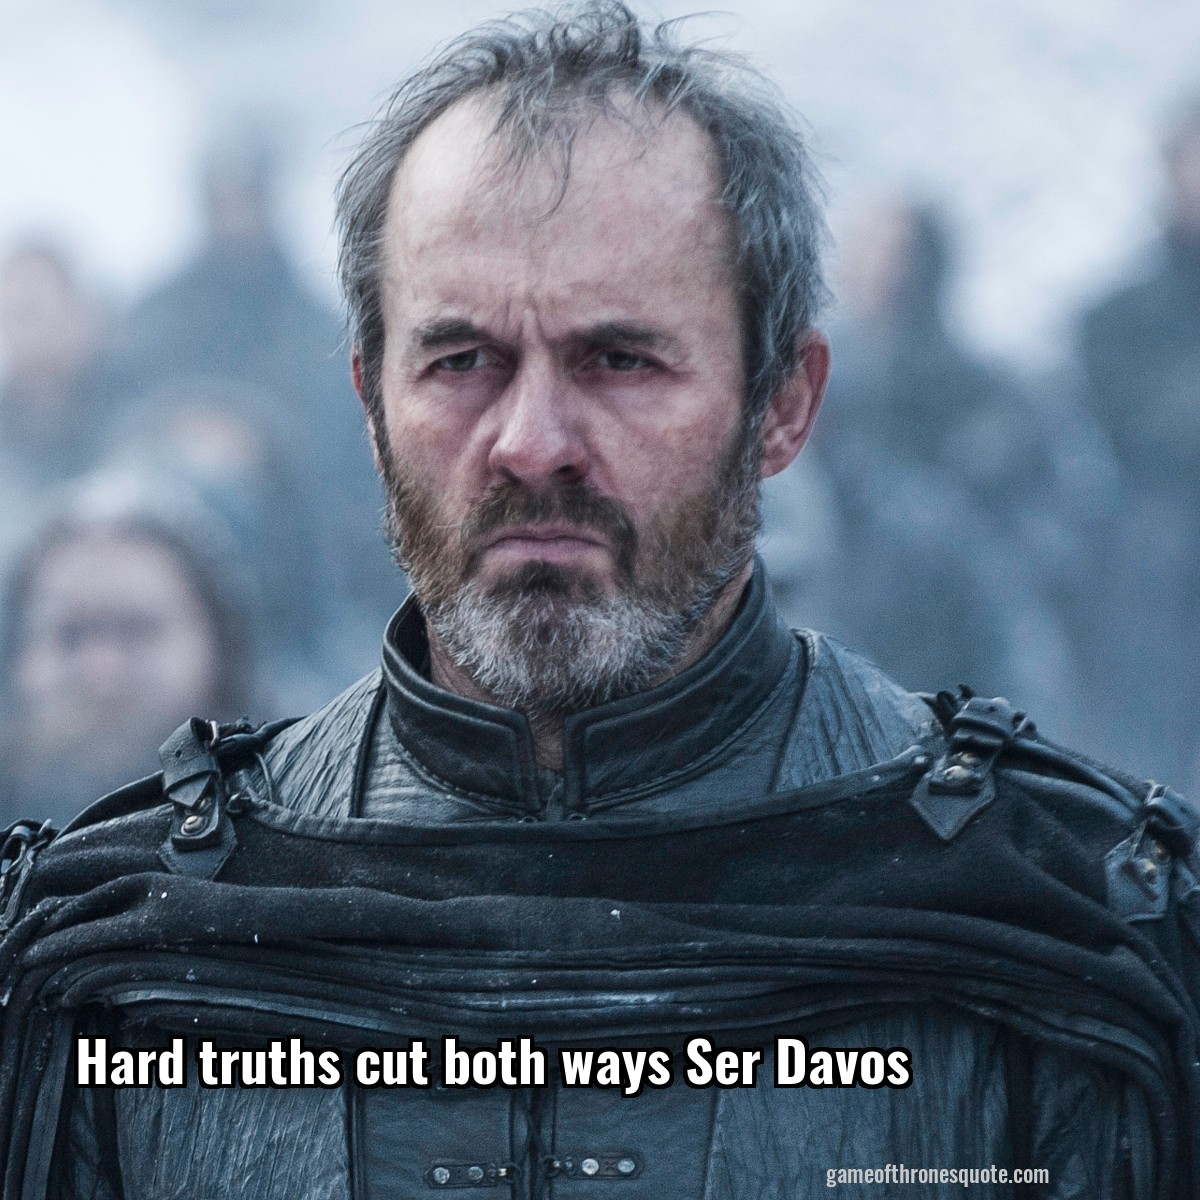 Hard truths cut both ways Ser Davos